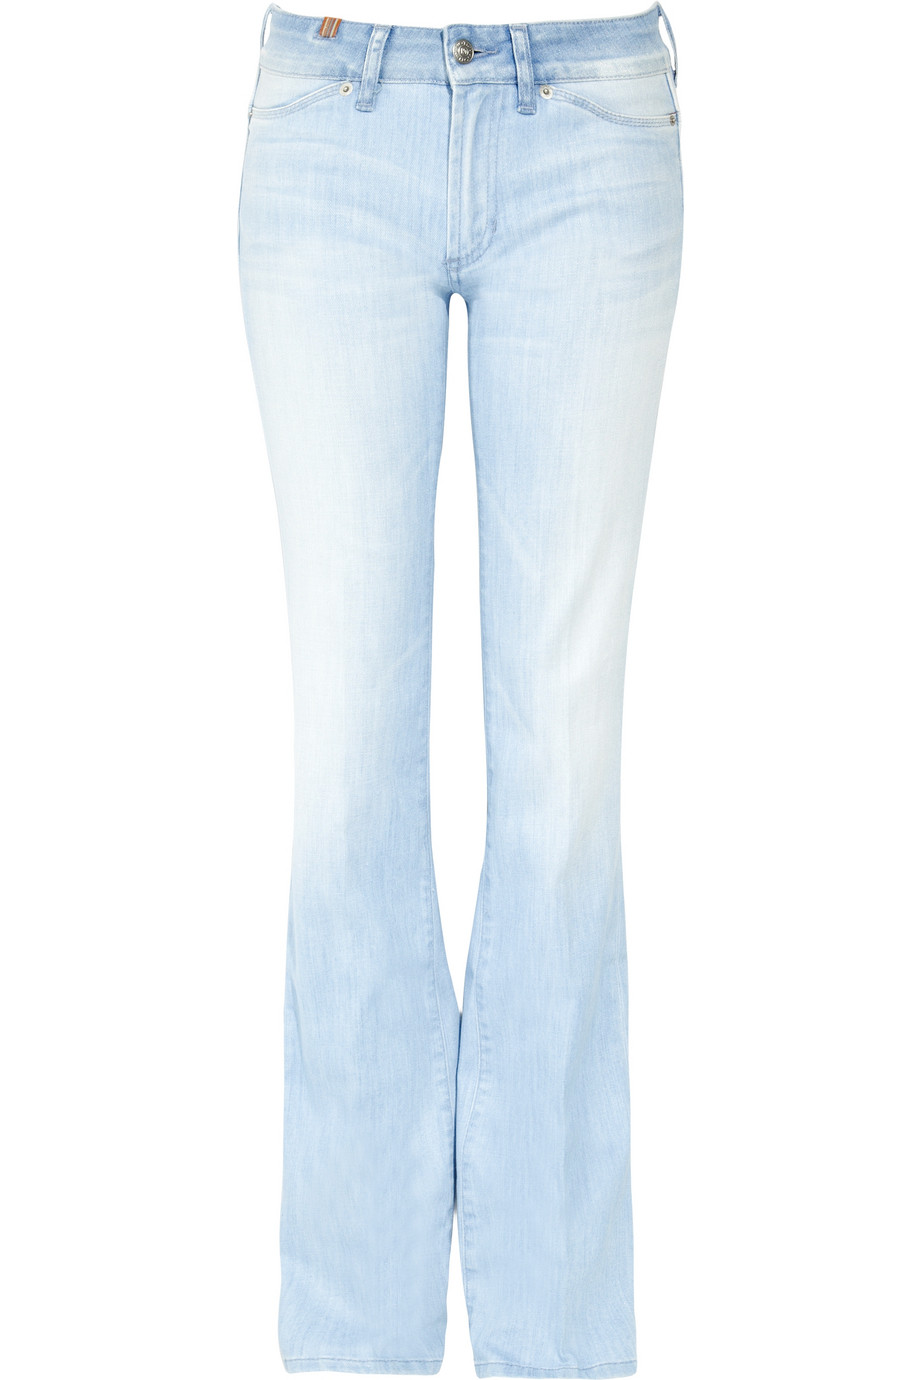 Light Blue Bootcut Jeans Womens  Jeans To